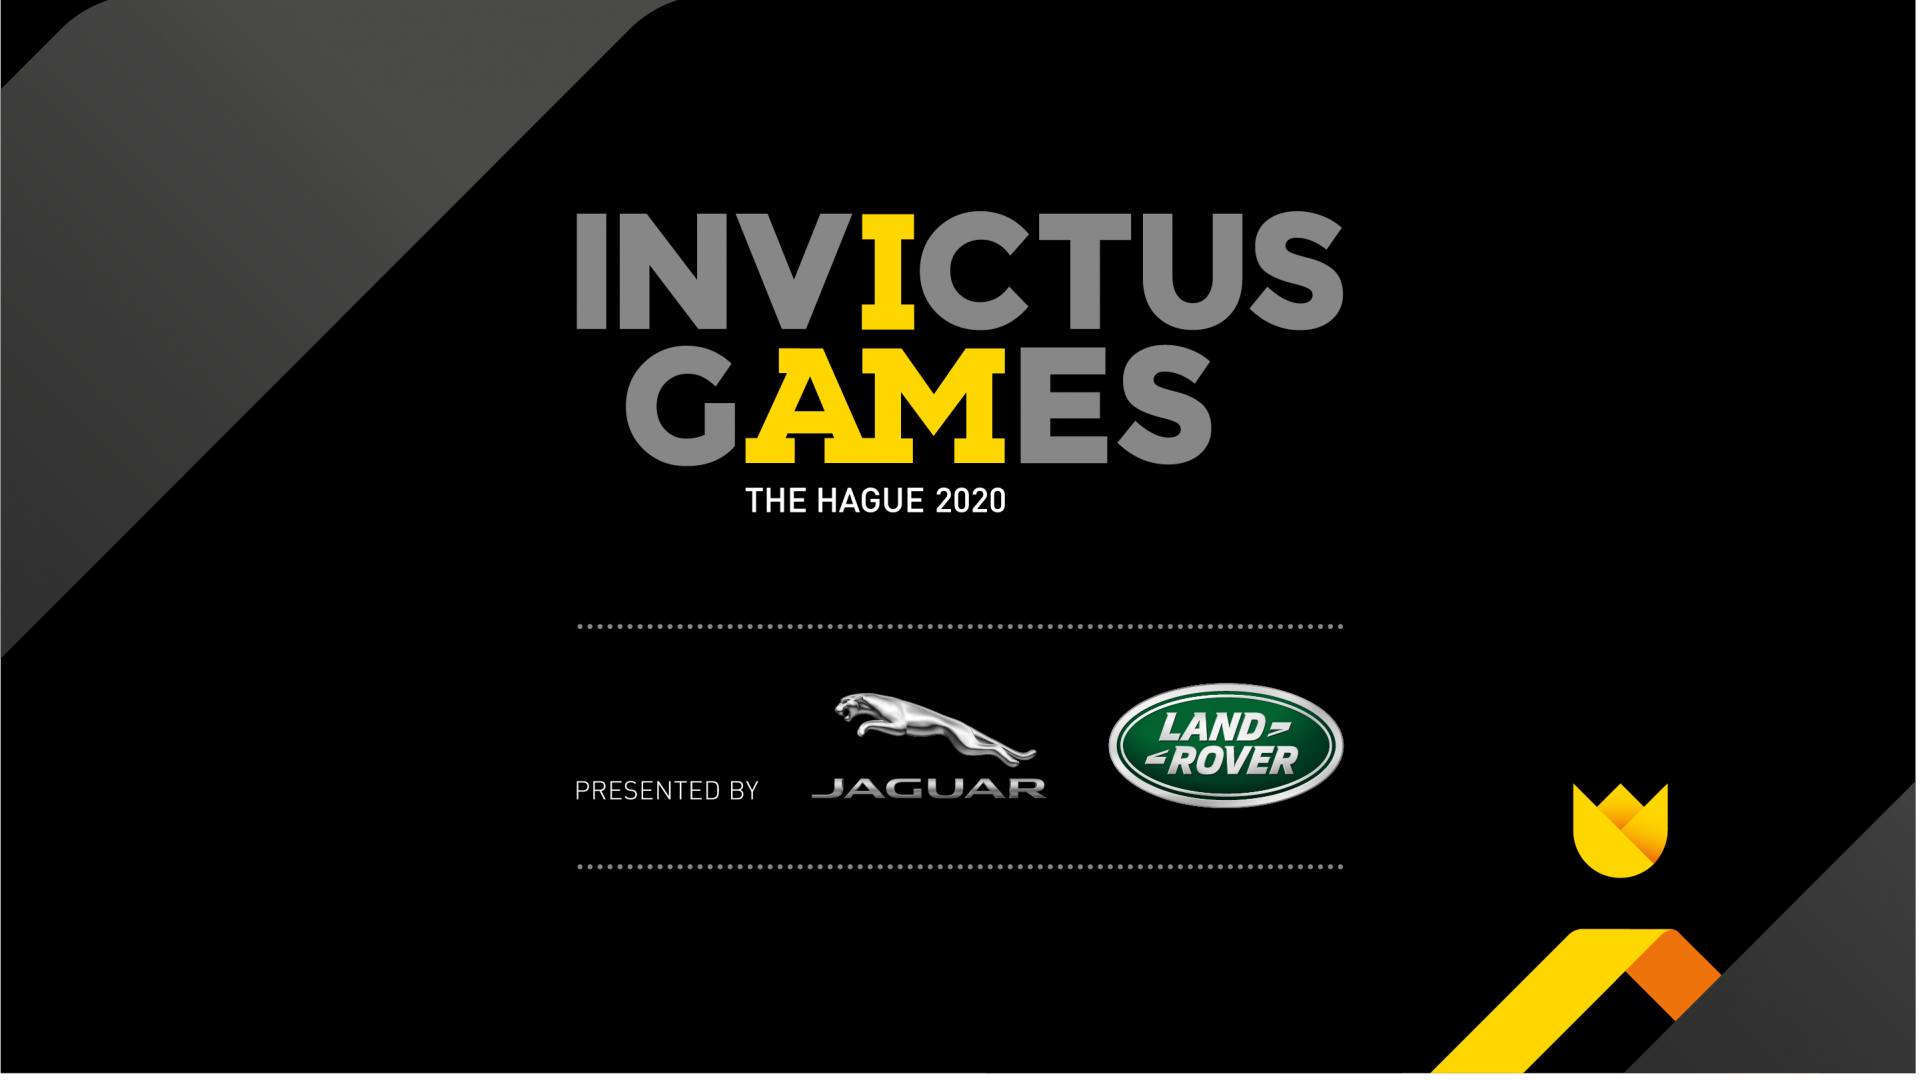 The Invictus Games the Hague rescheduled